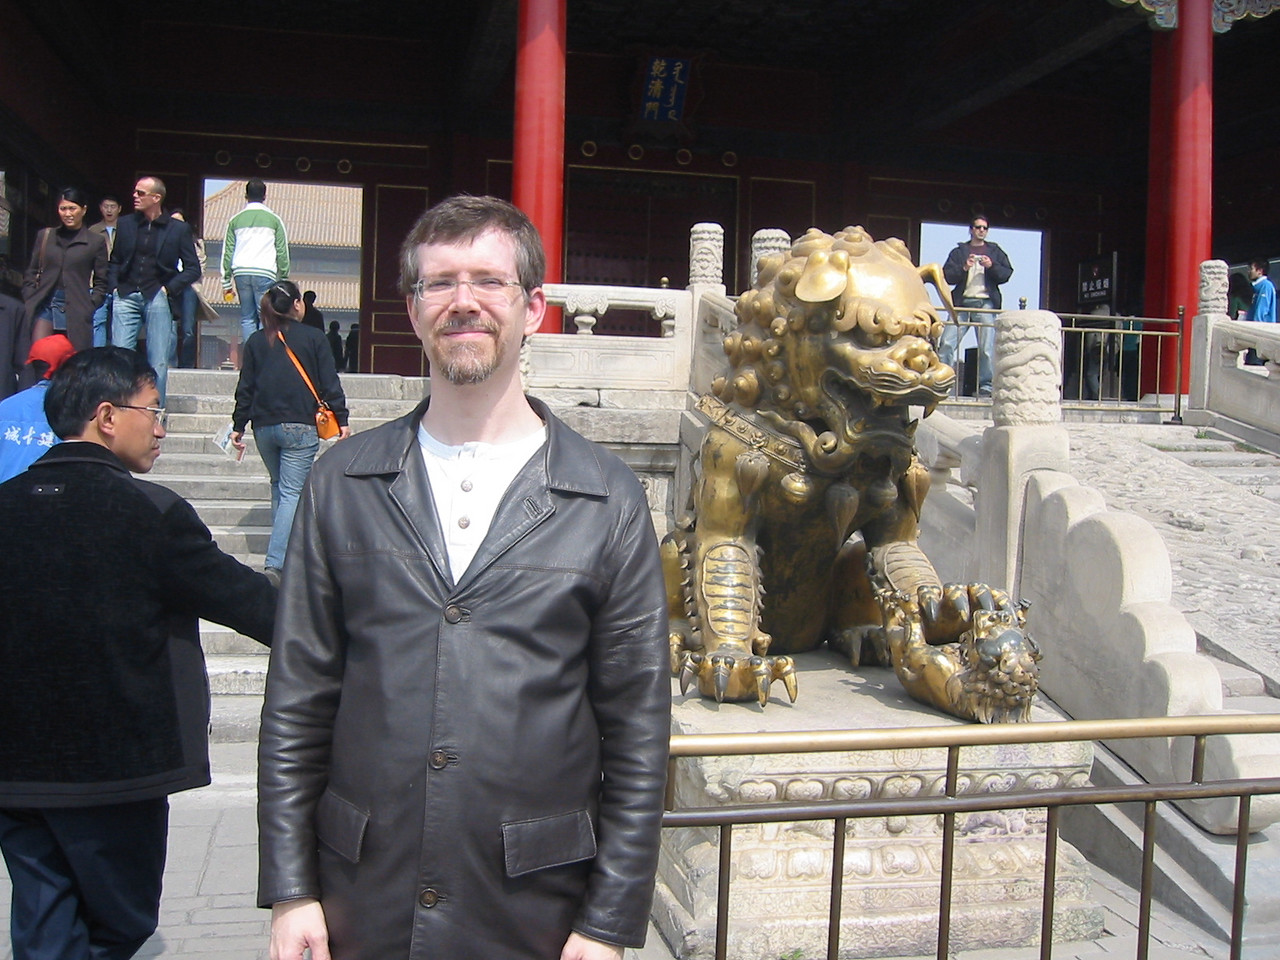 Me in front of the Gate of Heavenly Purity